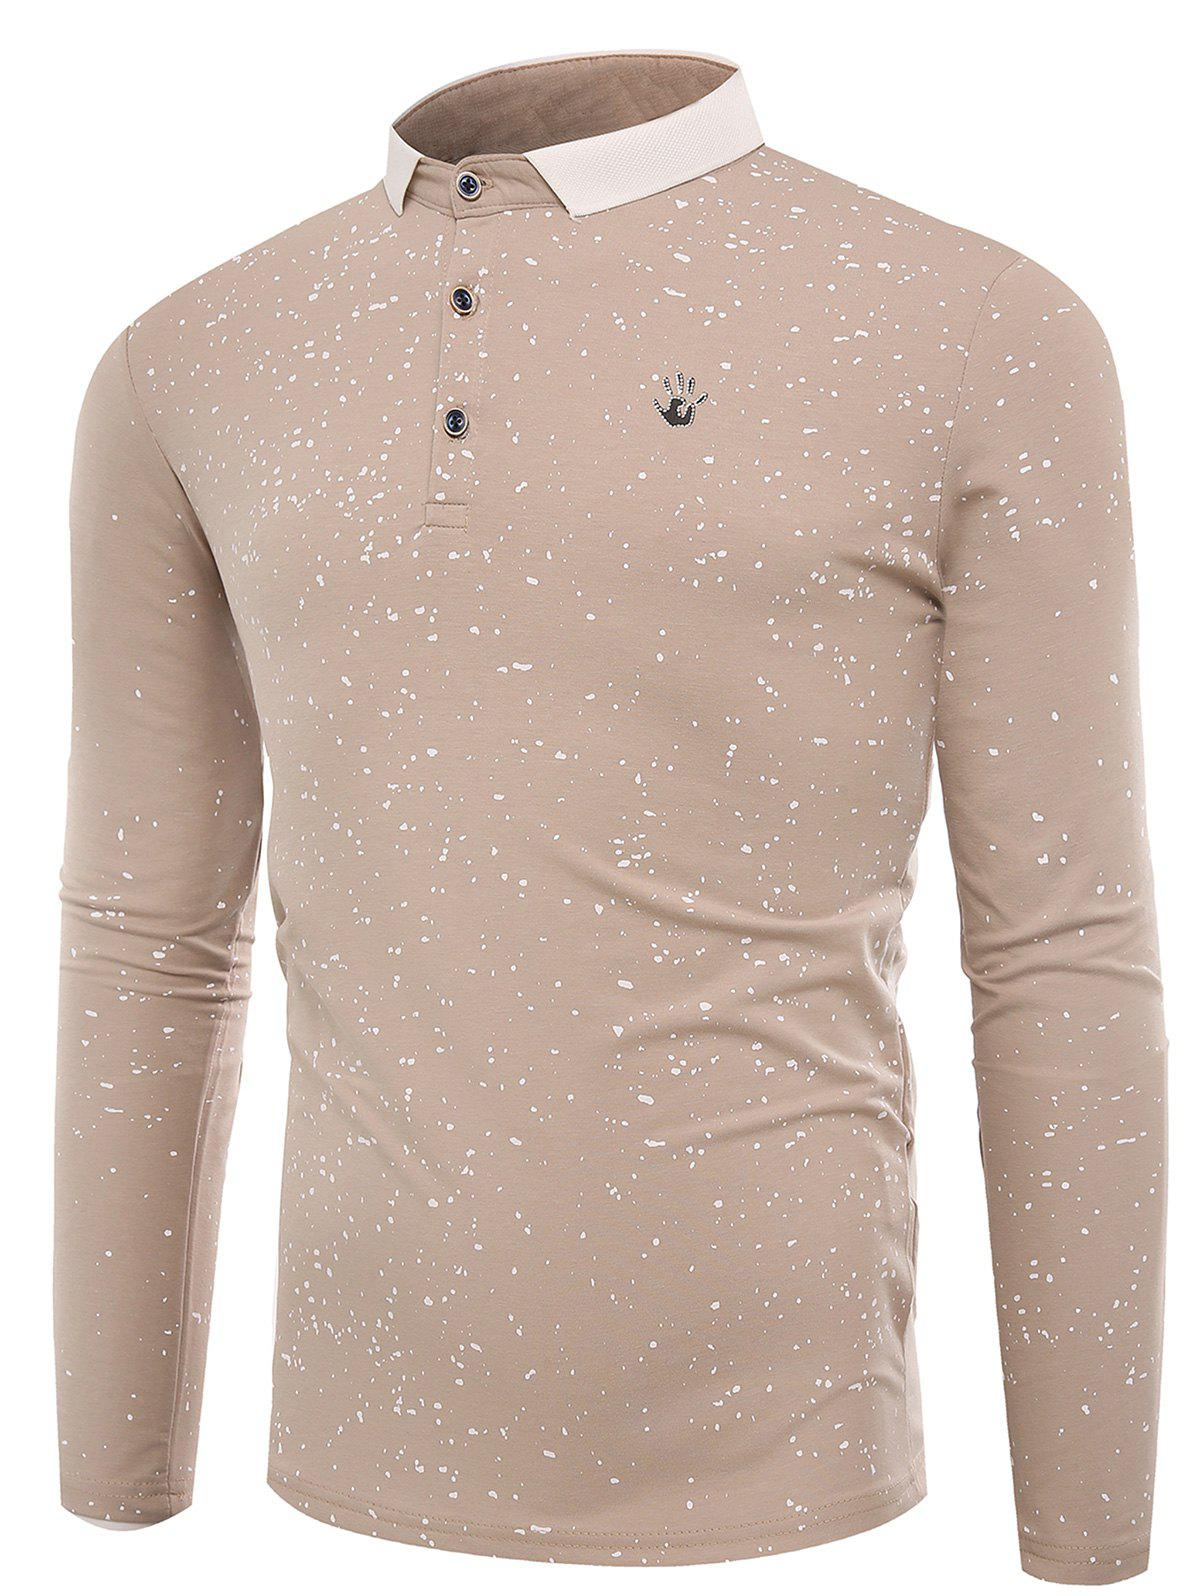 Splatter Paint Long Sleeve Polo T-shirt - APRICOT 3XL